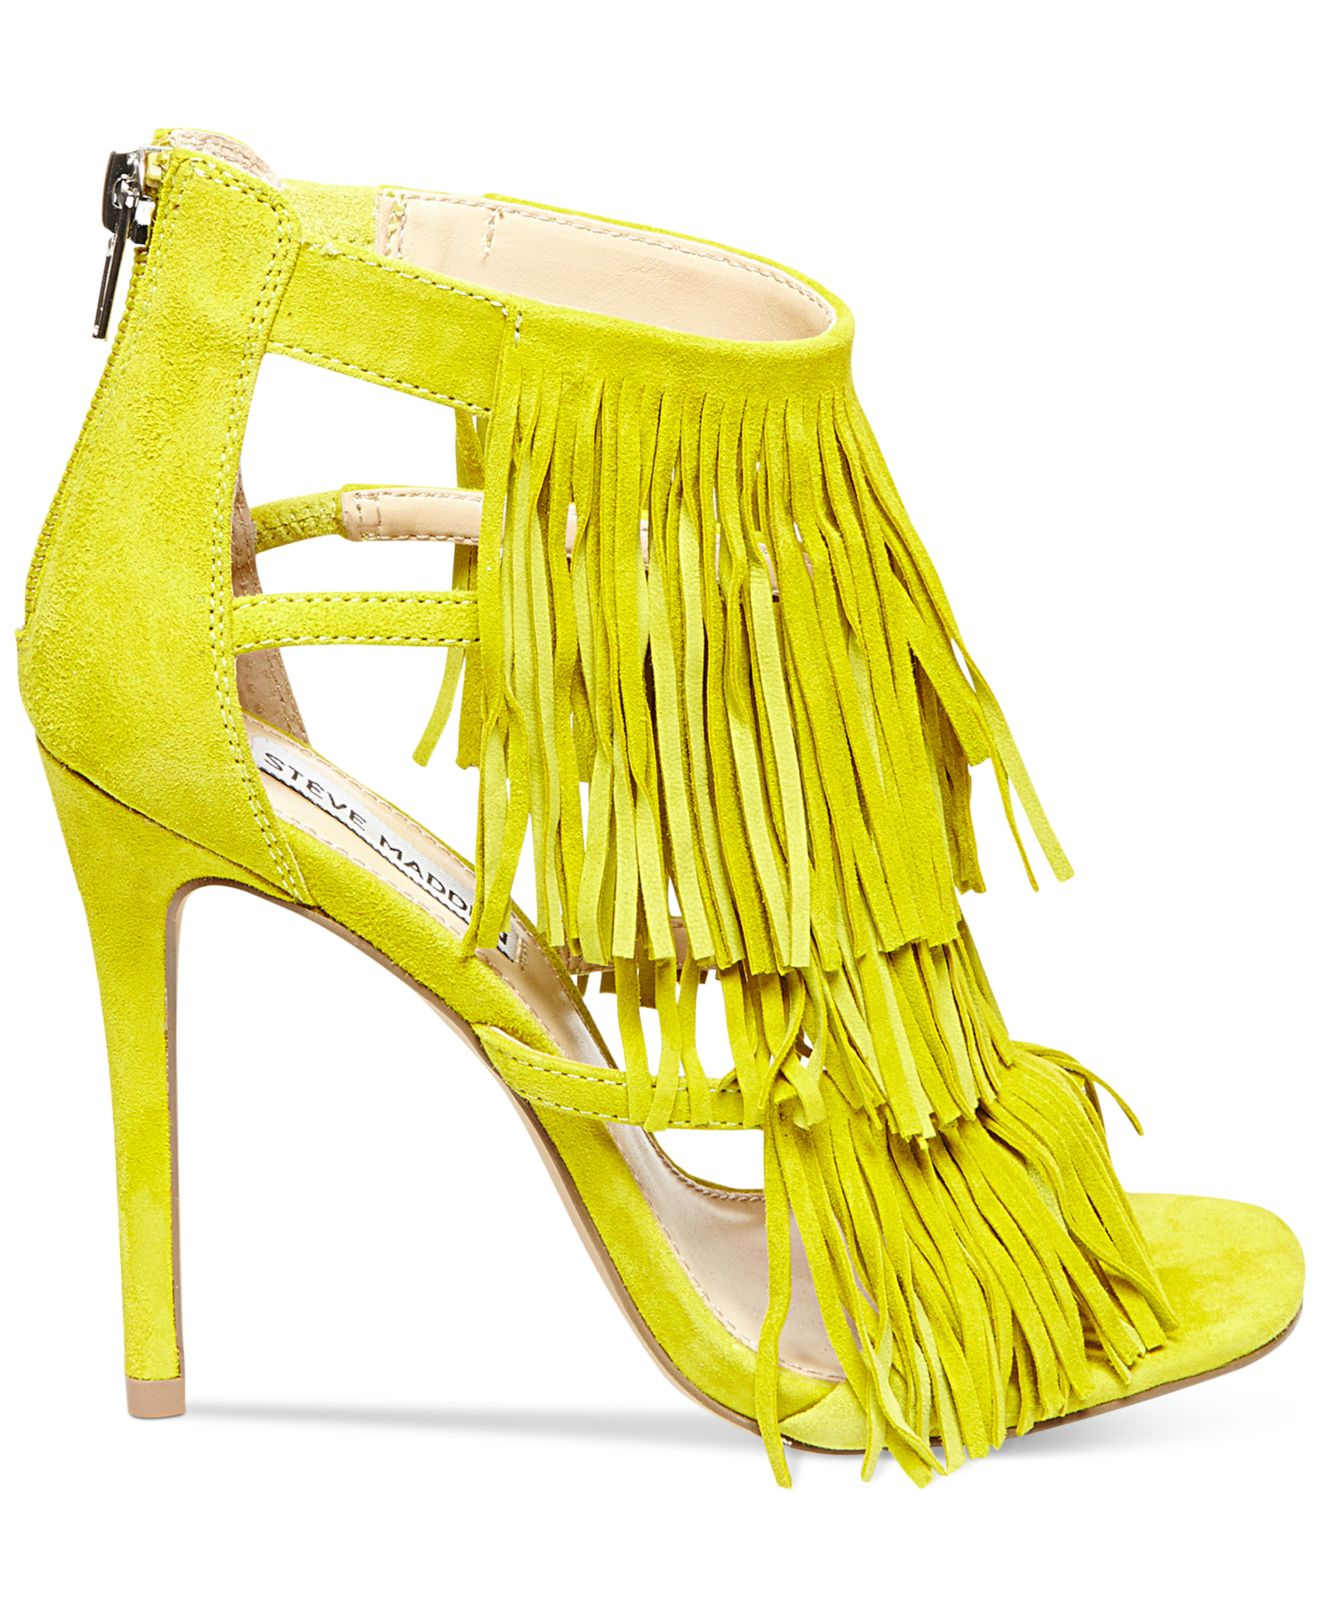 d0bd0e490aff Gallery. Previously sold at  Macy s · Women s Yellow Heels ...